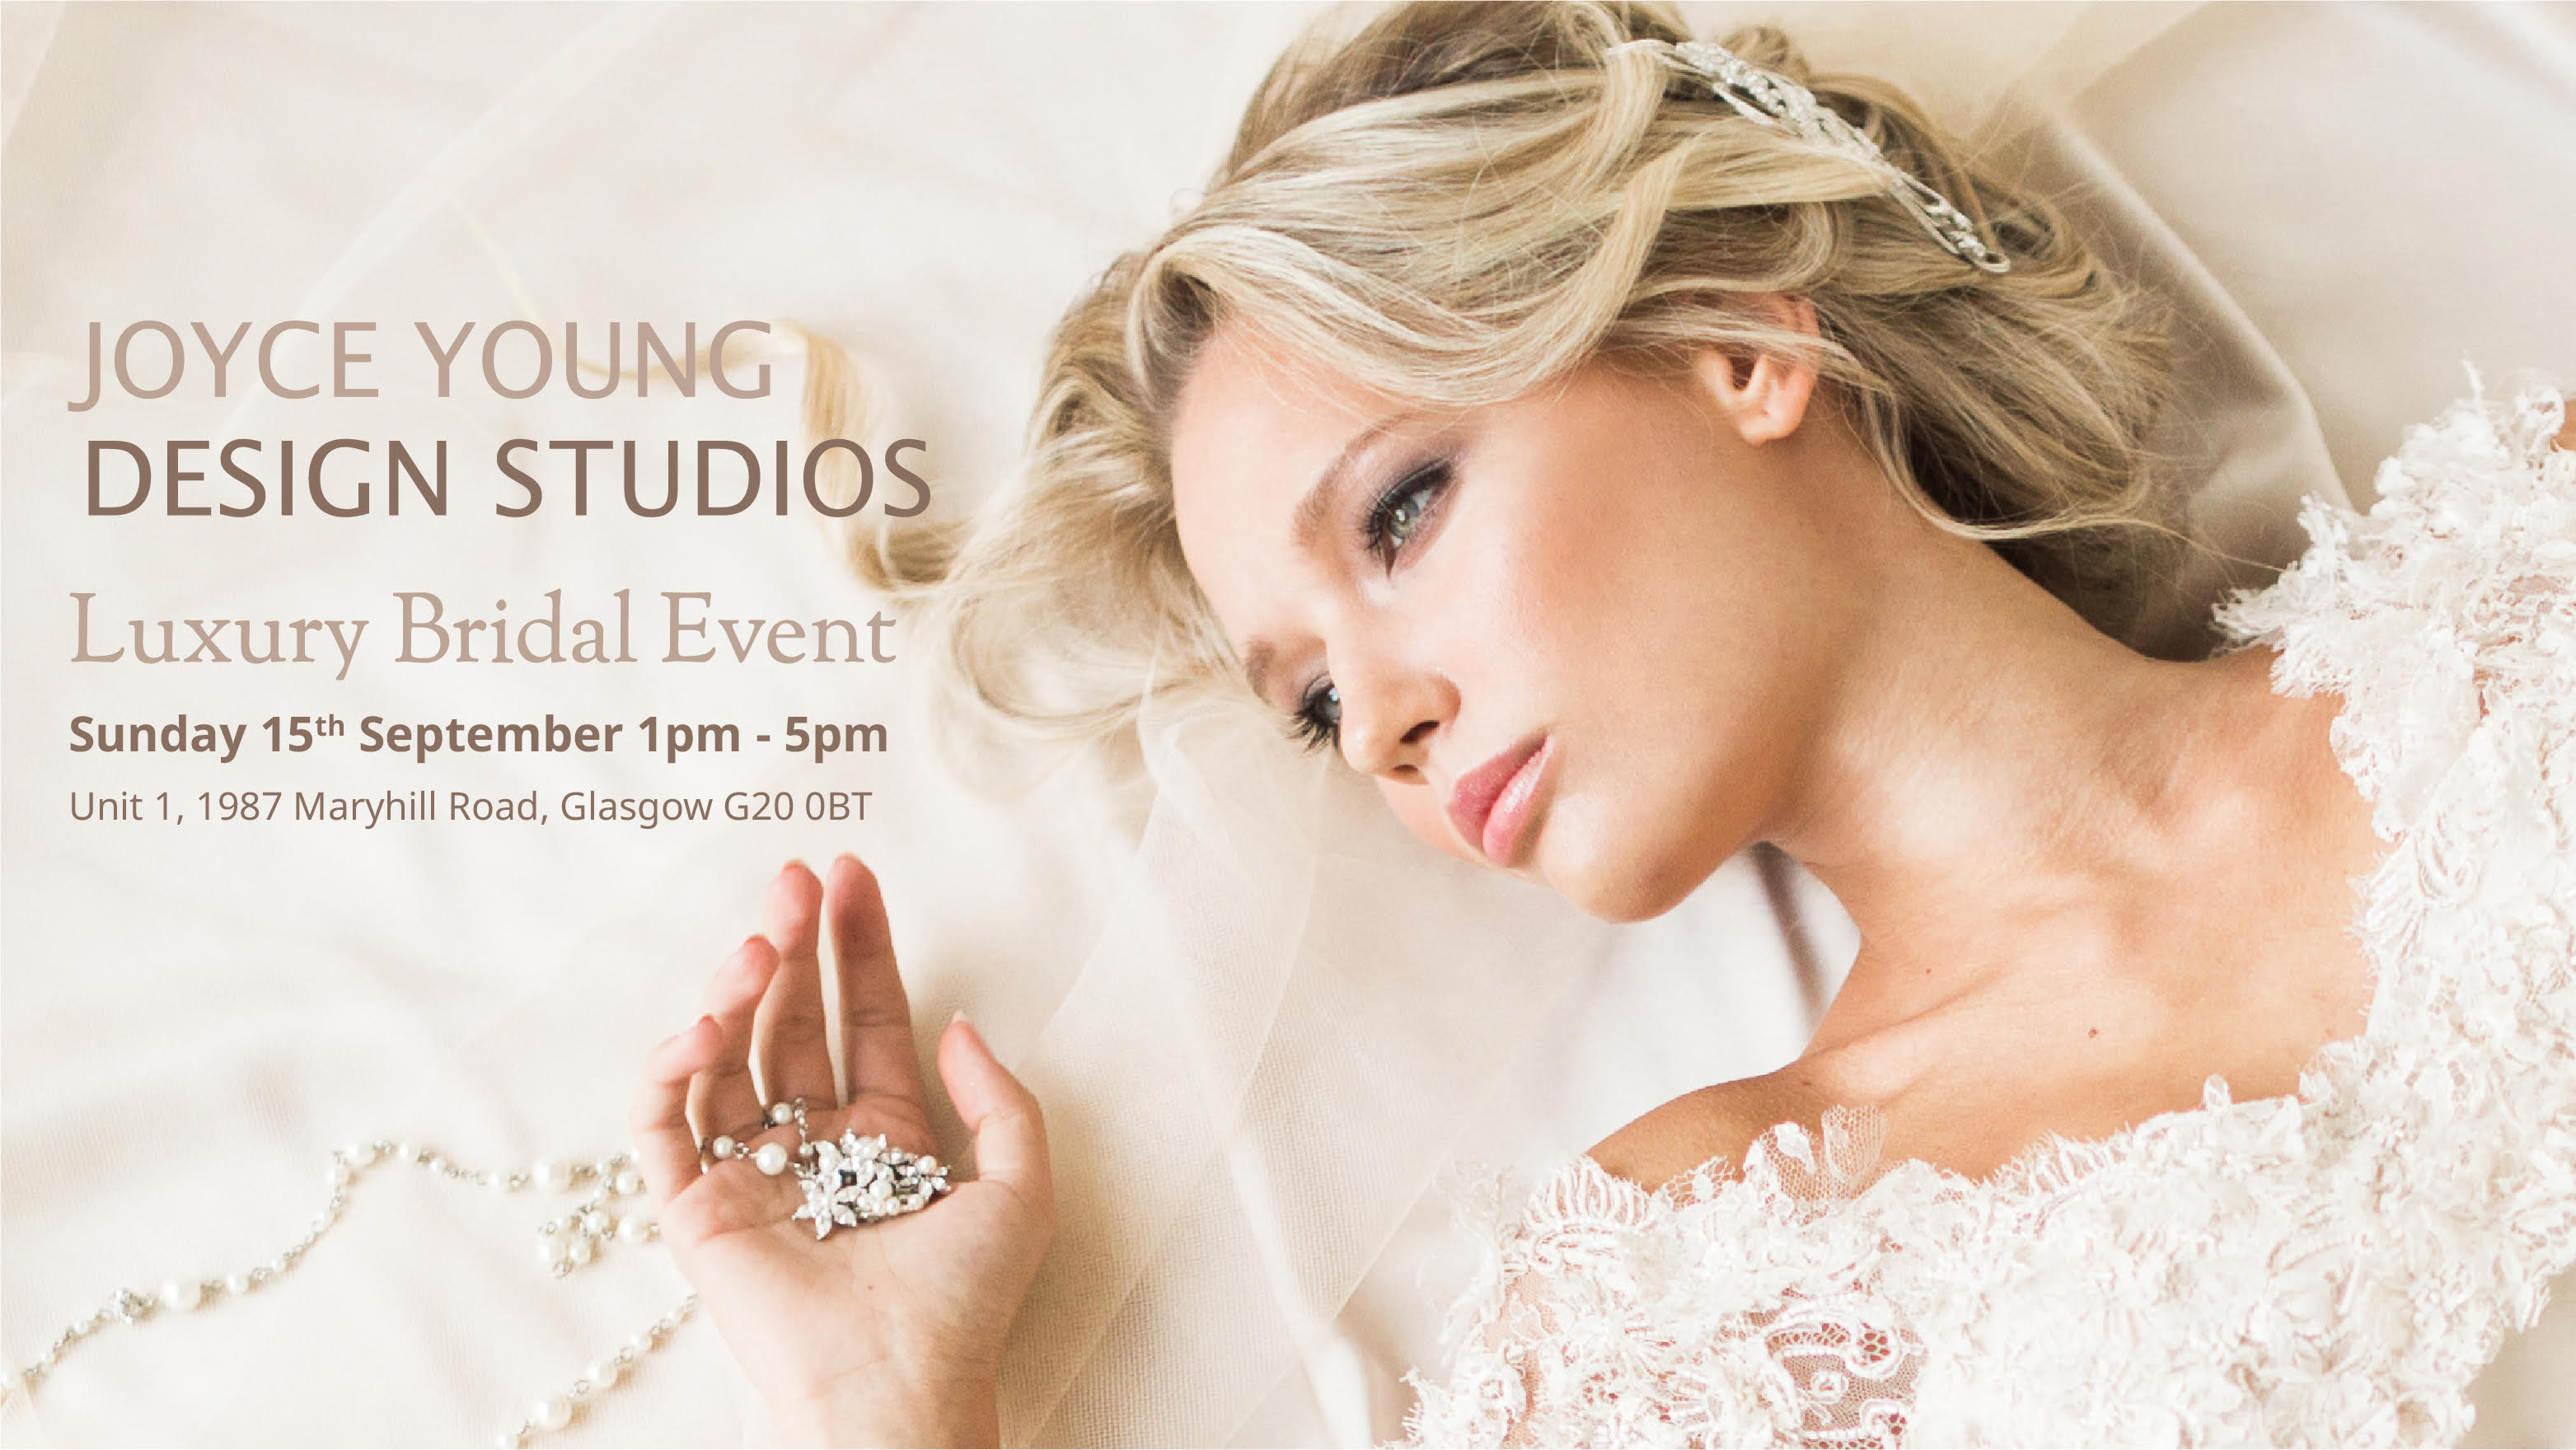 Bridal Event in our Glasgow Showroom on the 15th of September 2019